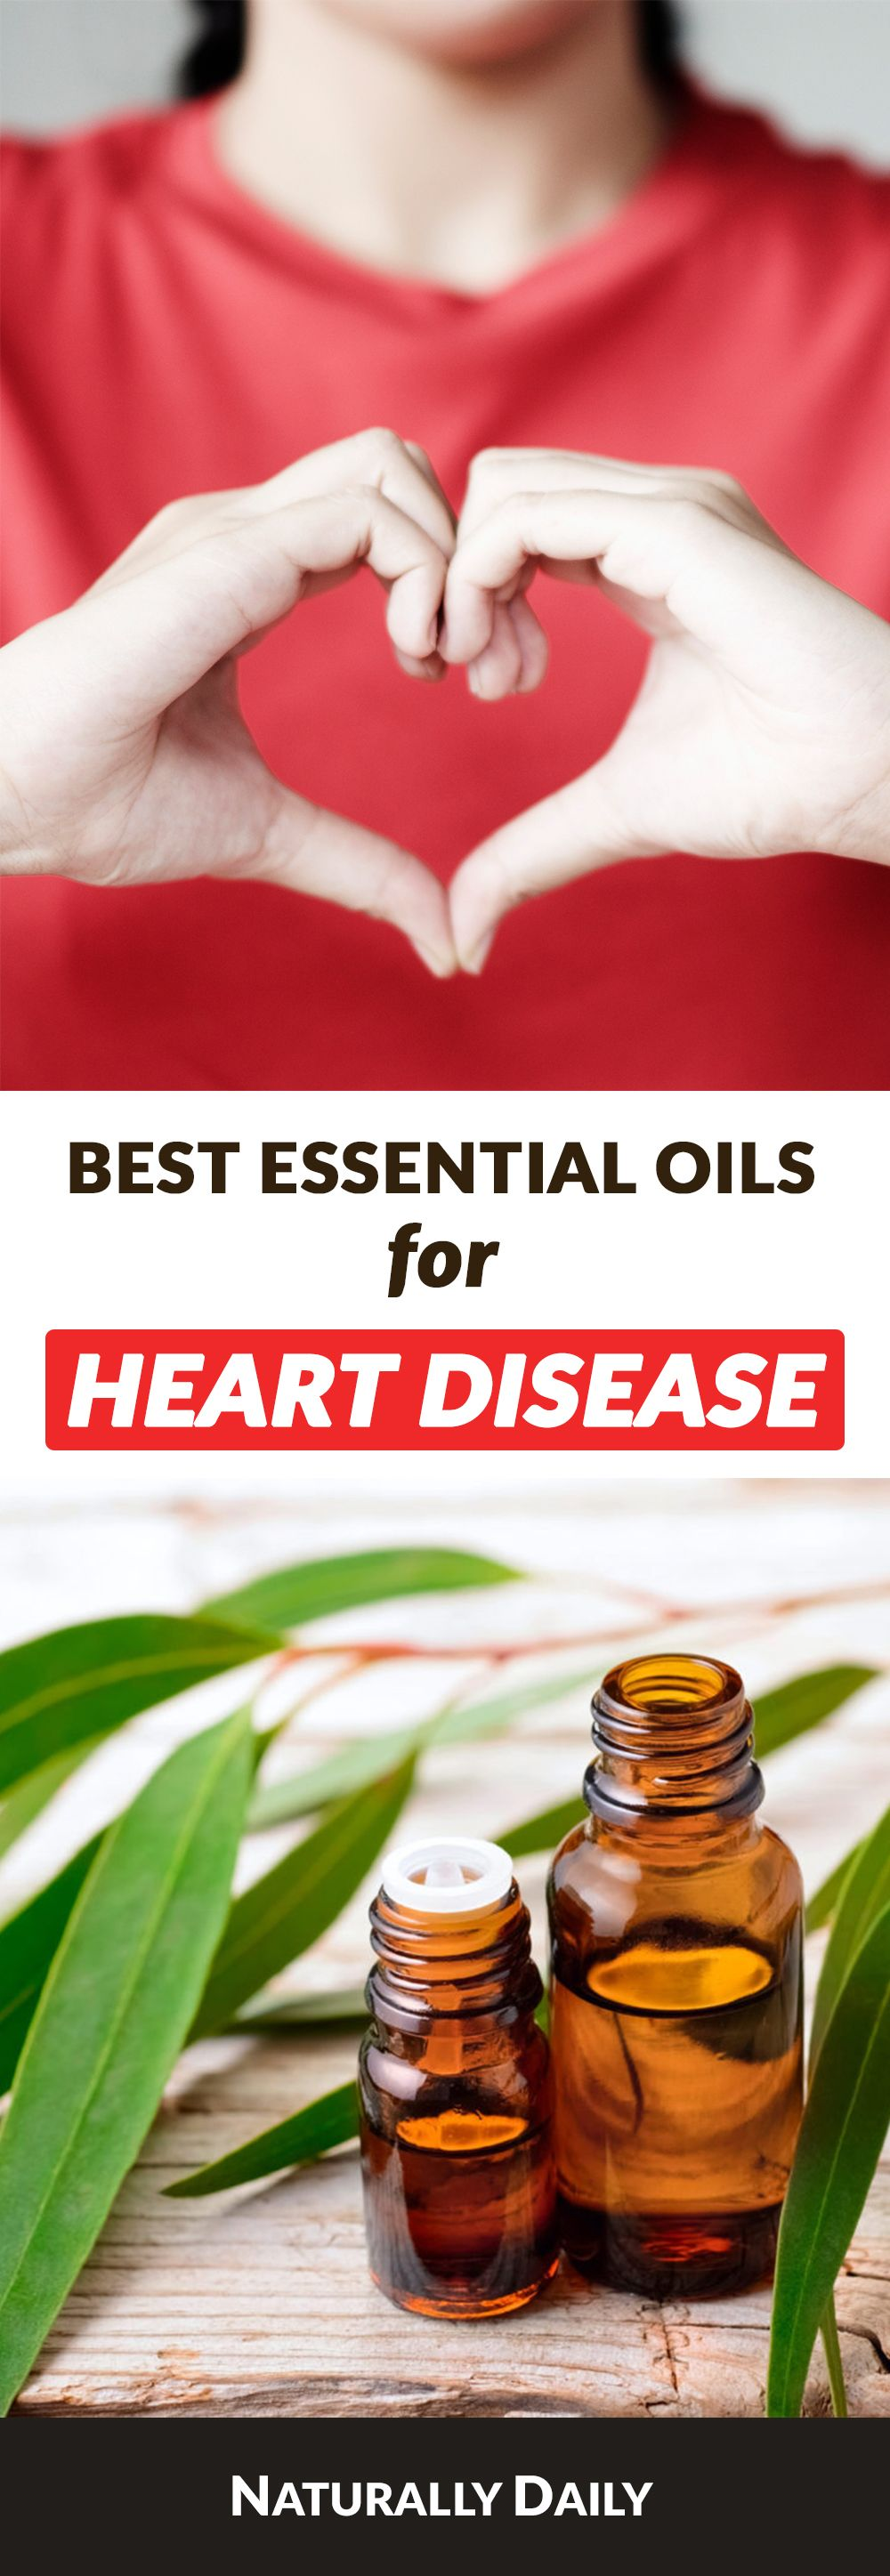 6 Essential Oils for Heart Disease  Heart Health Heart disease is one of the leading causes of death worldwide The sooner we start taking good care of the heart health th...